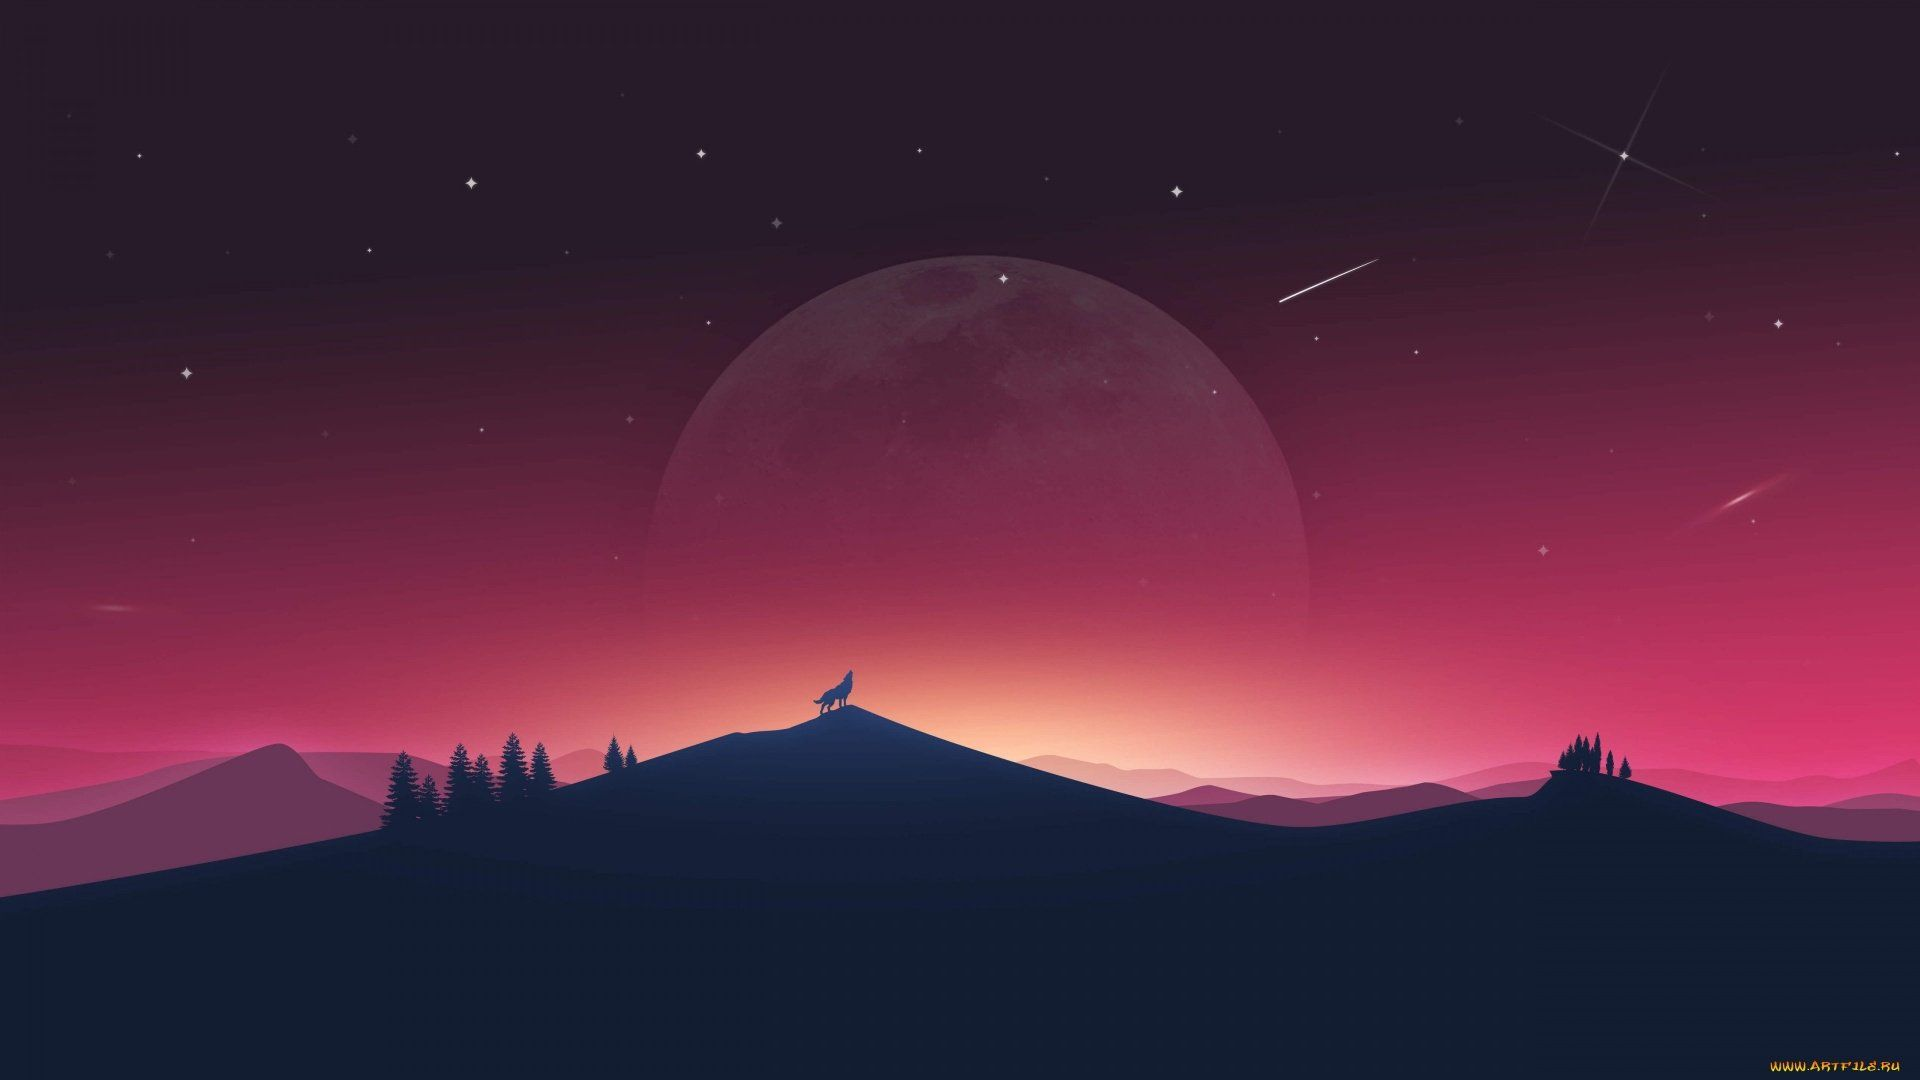 PC Space Aesthetic Wallpapers - Wallpaper Cave